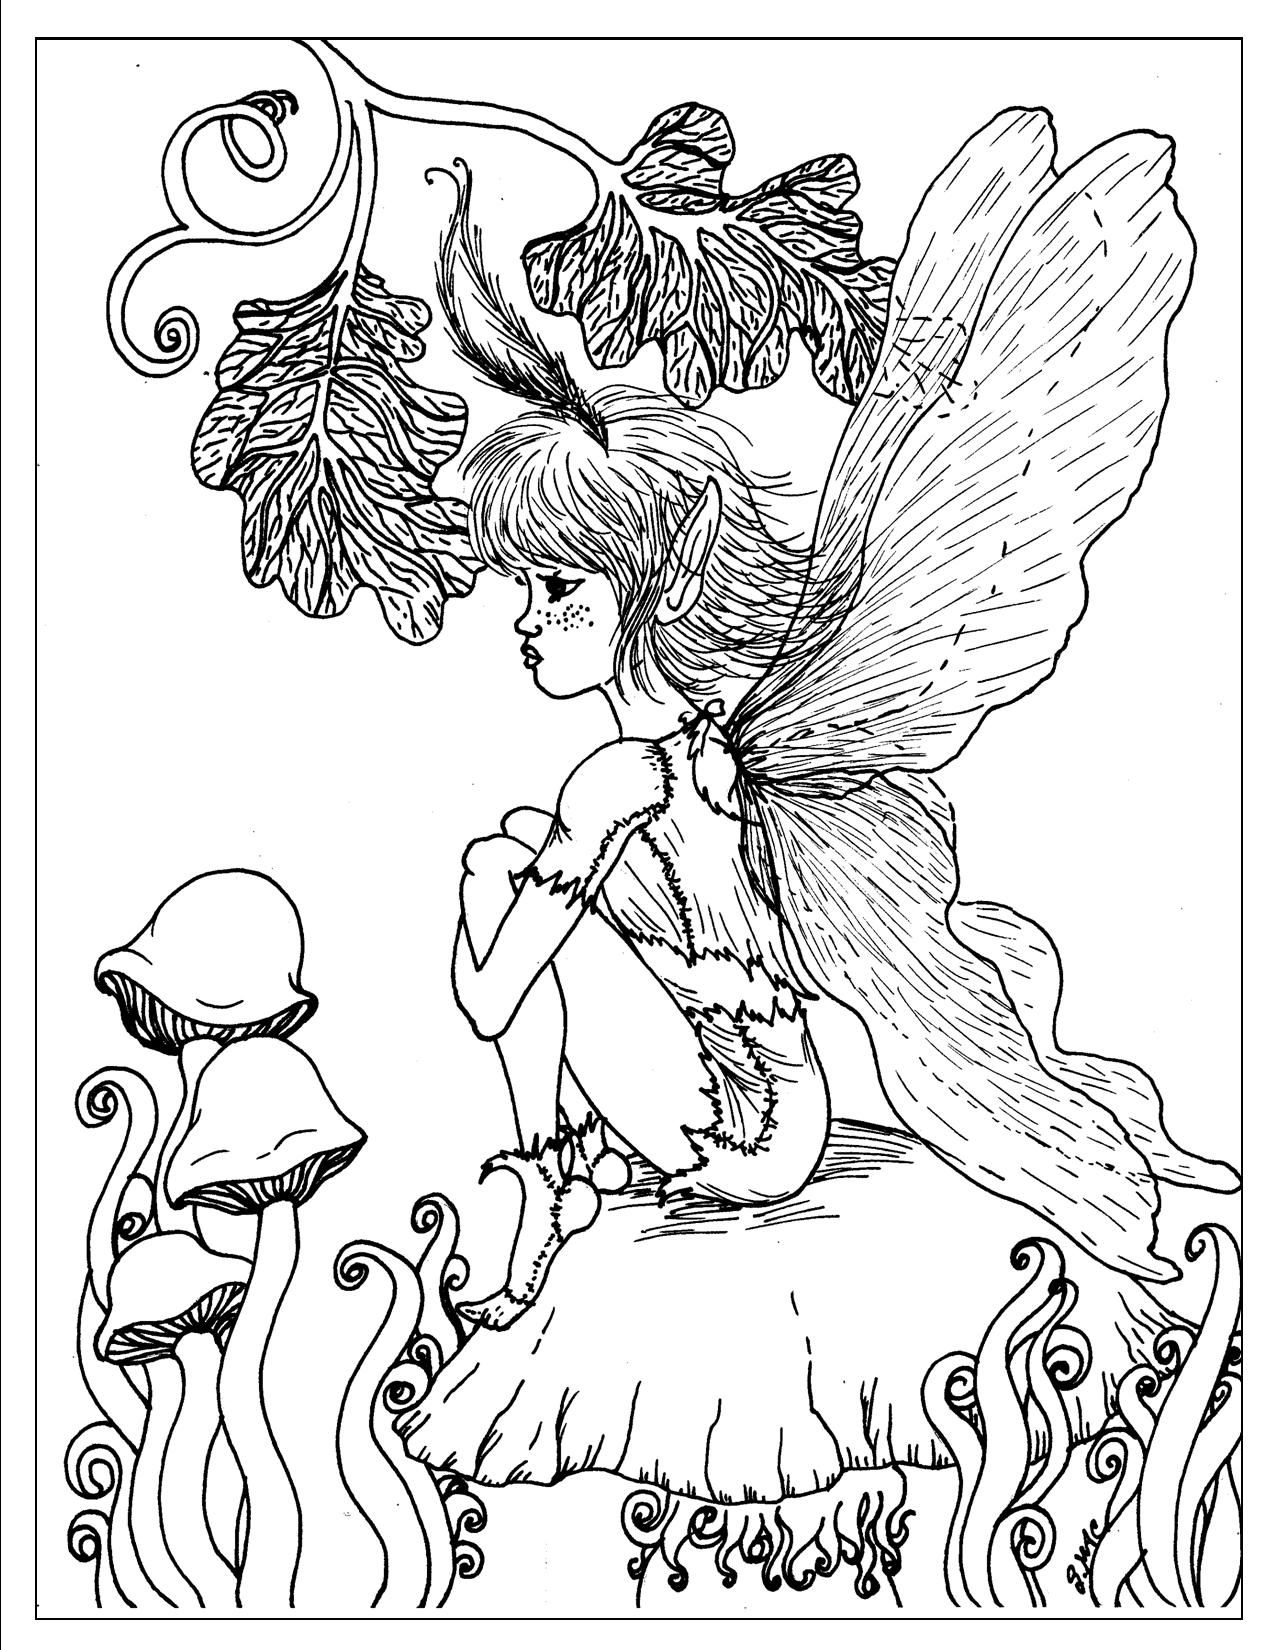 Fantasy Coloring Pages For Adults To Download And Print